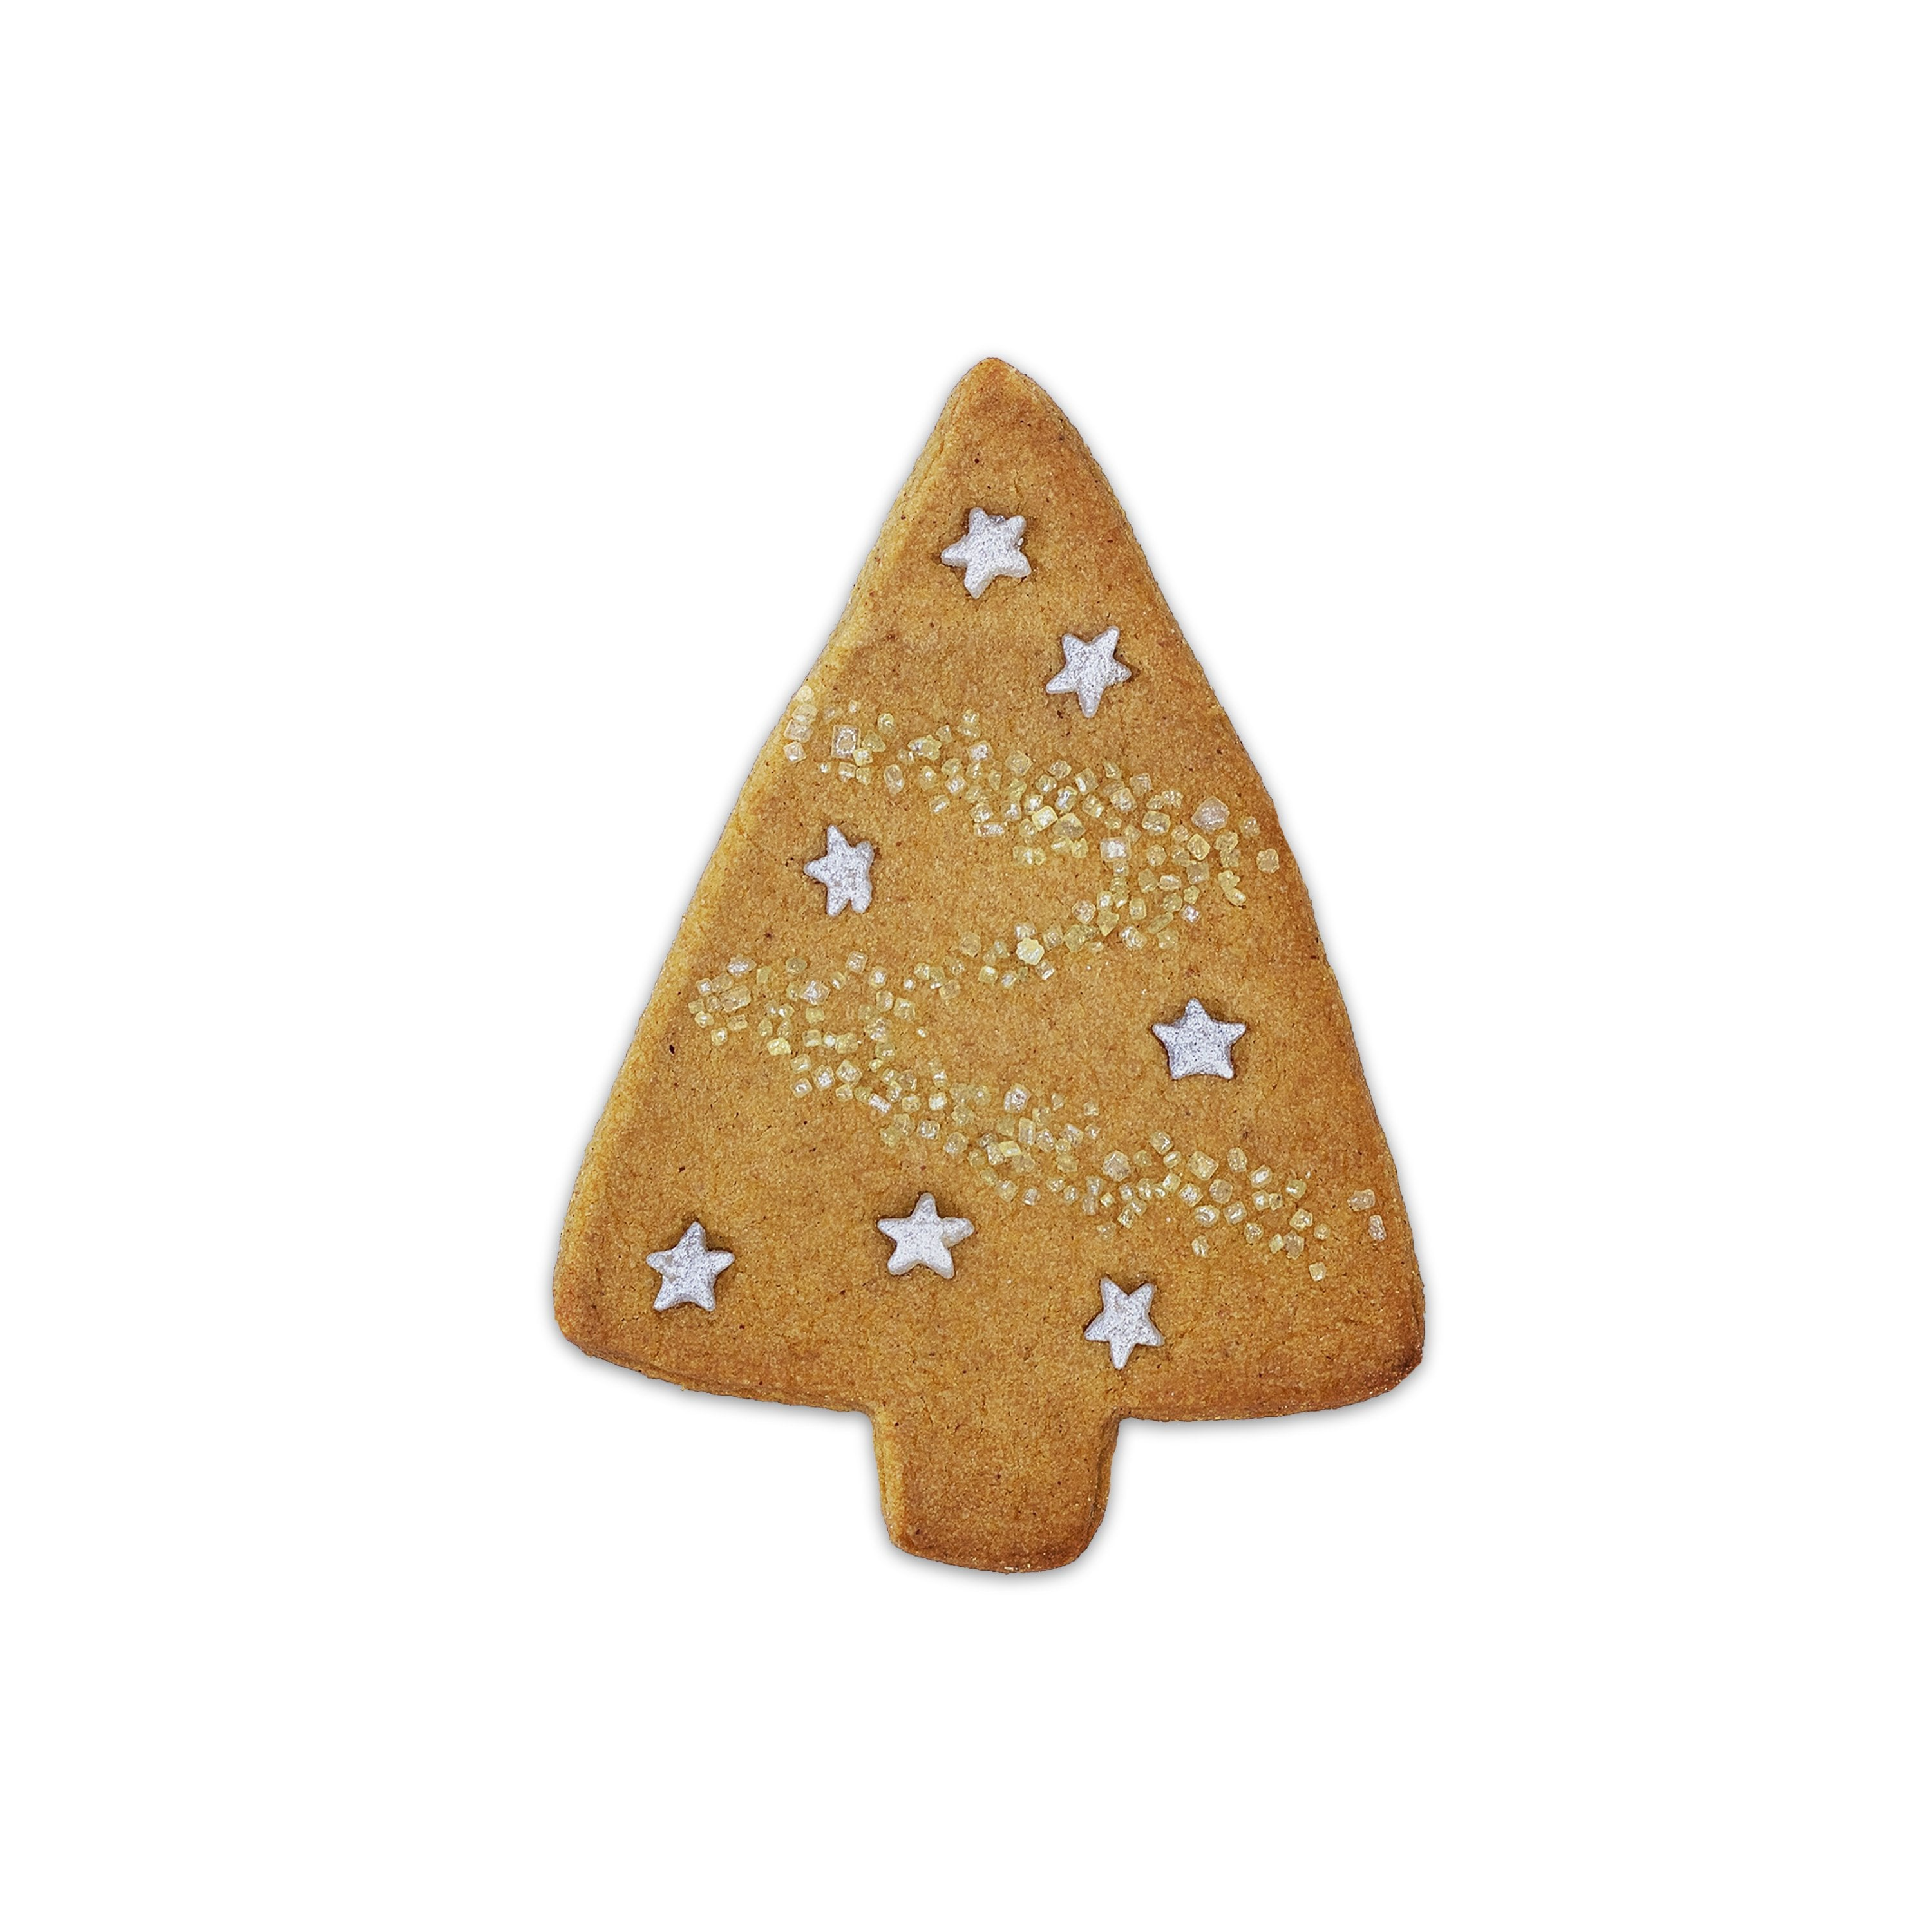 Gingerbread - Christmas Tree Biscuit Cracker Baking Kit - BKD